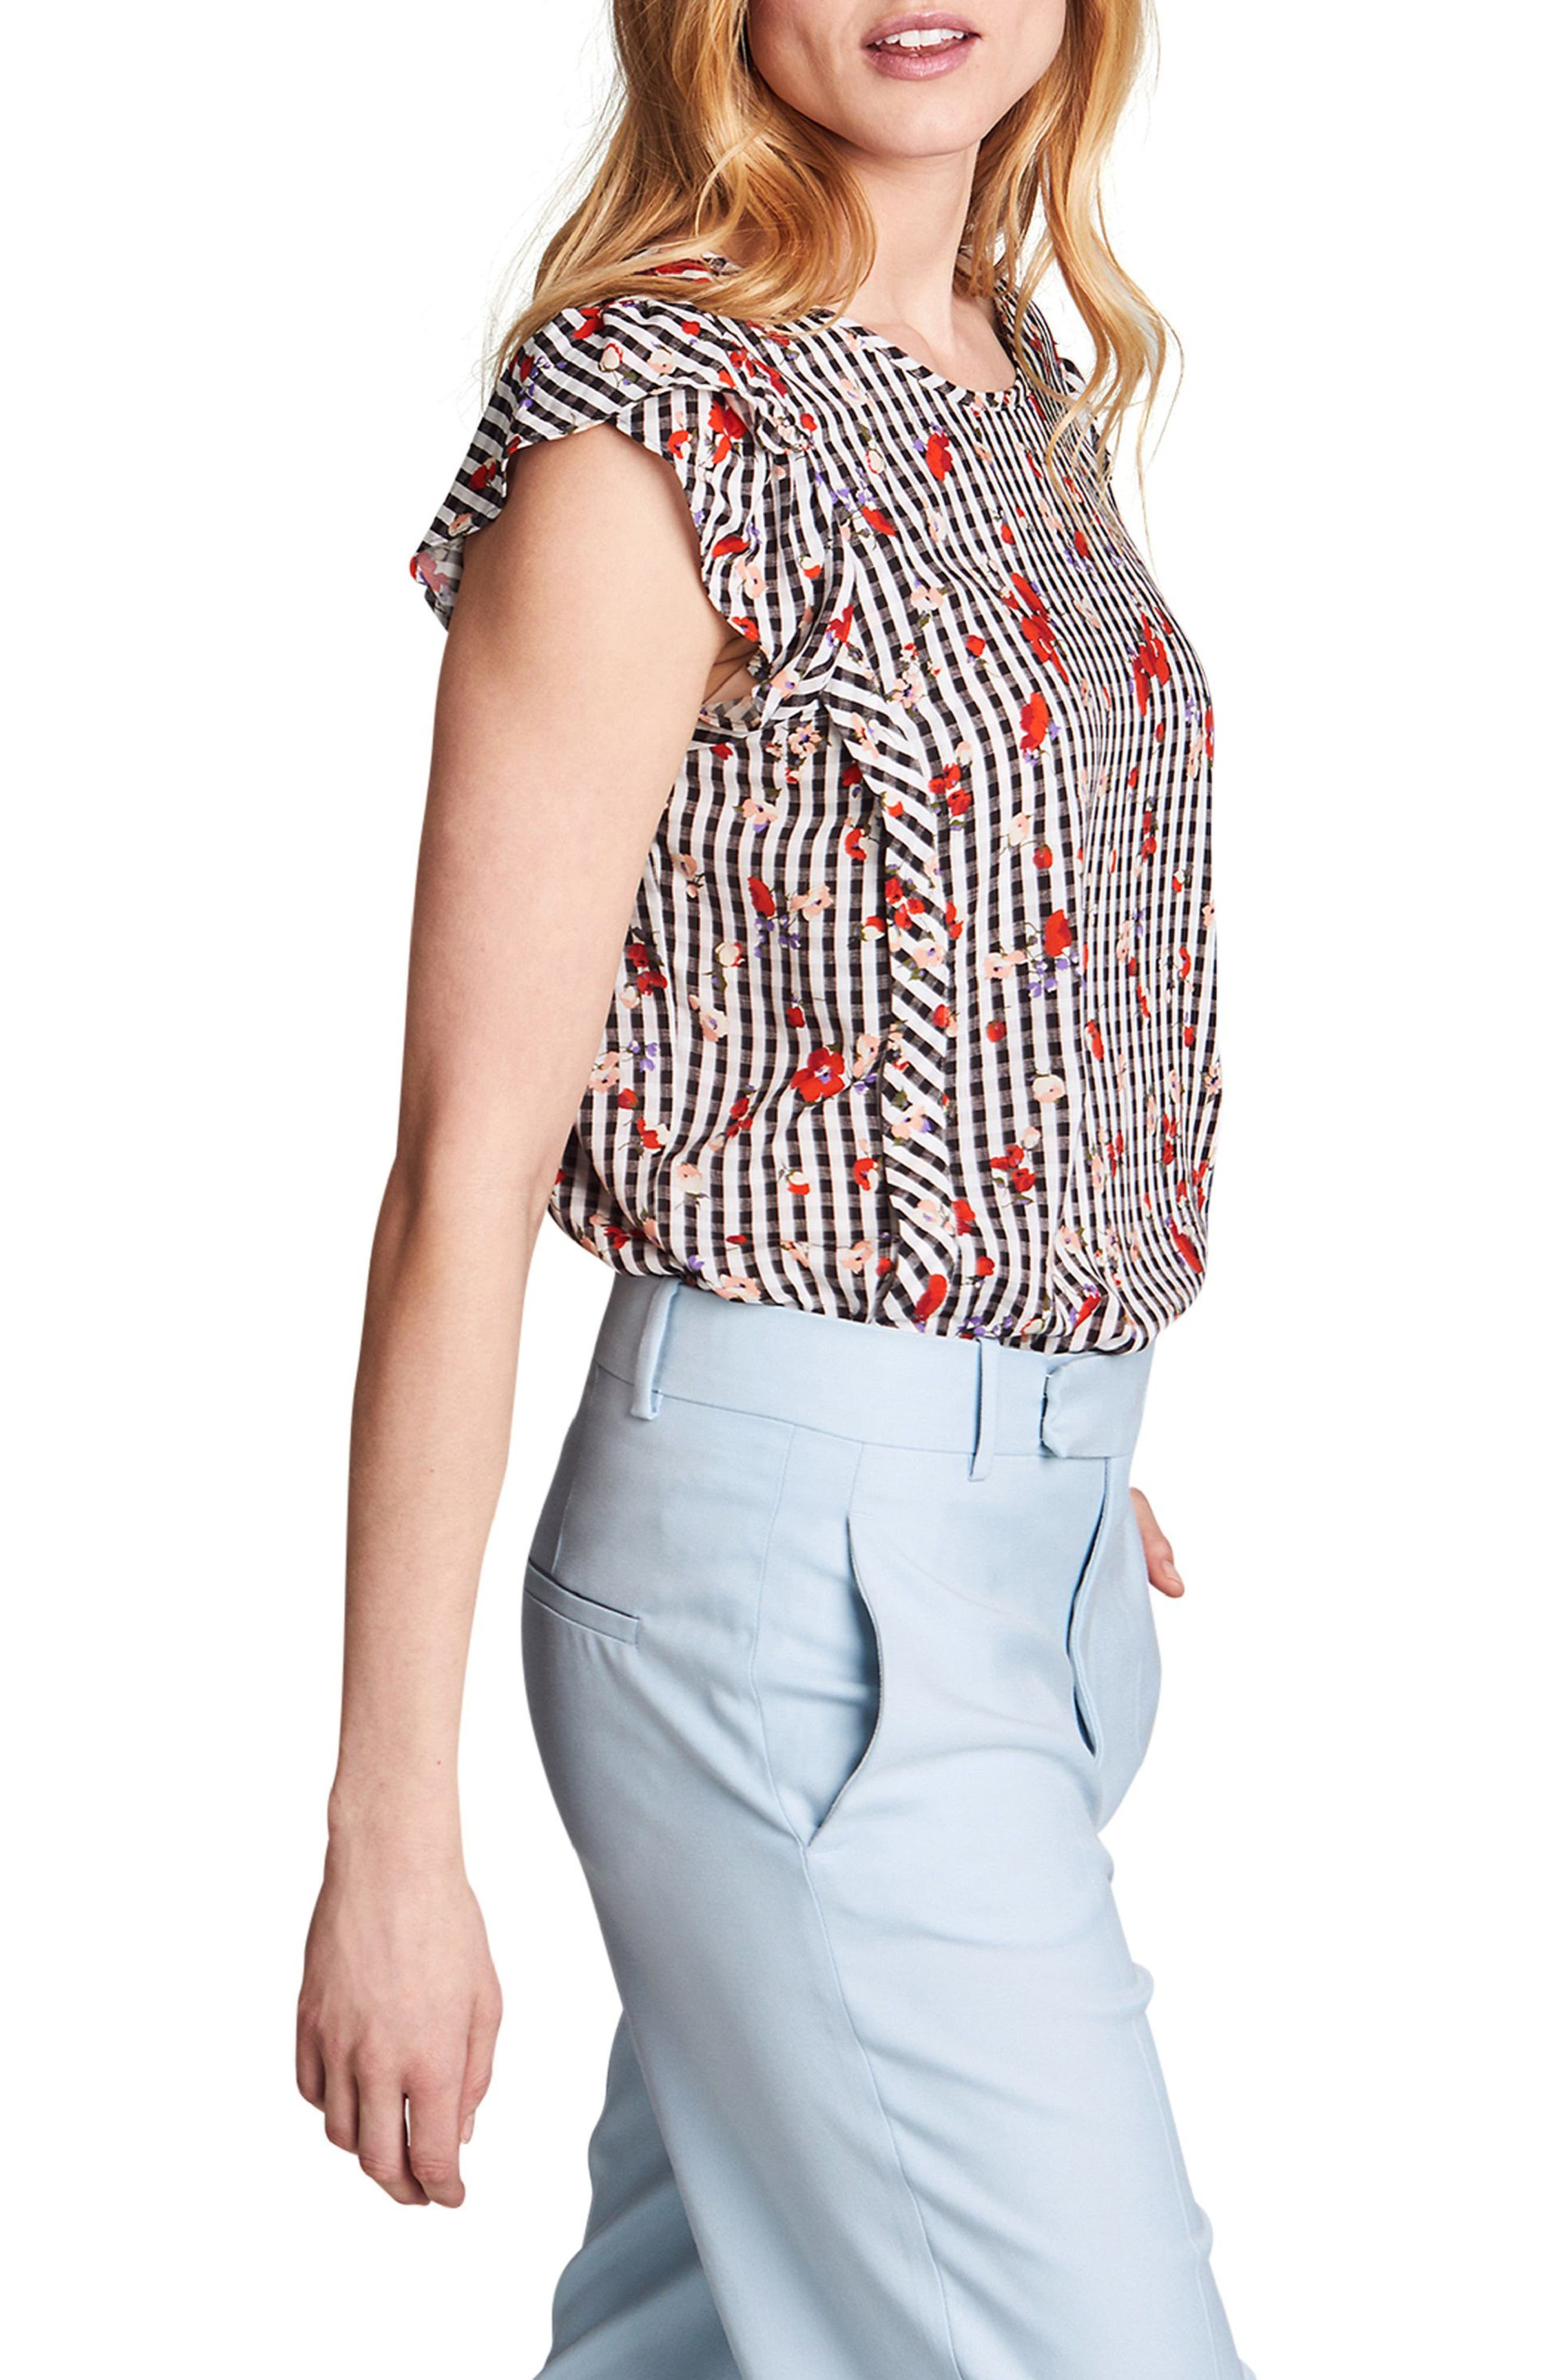 Audrey Nursing Top,                             Alternate thumbnail 3, color,                             Floral Print